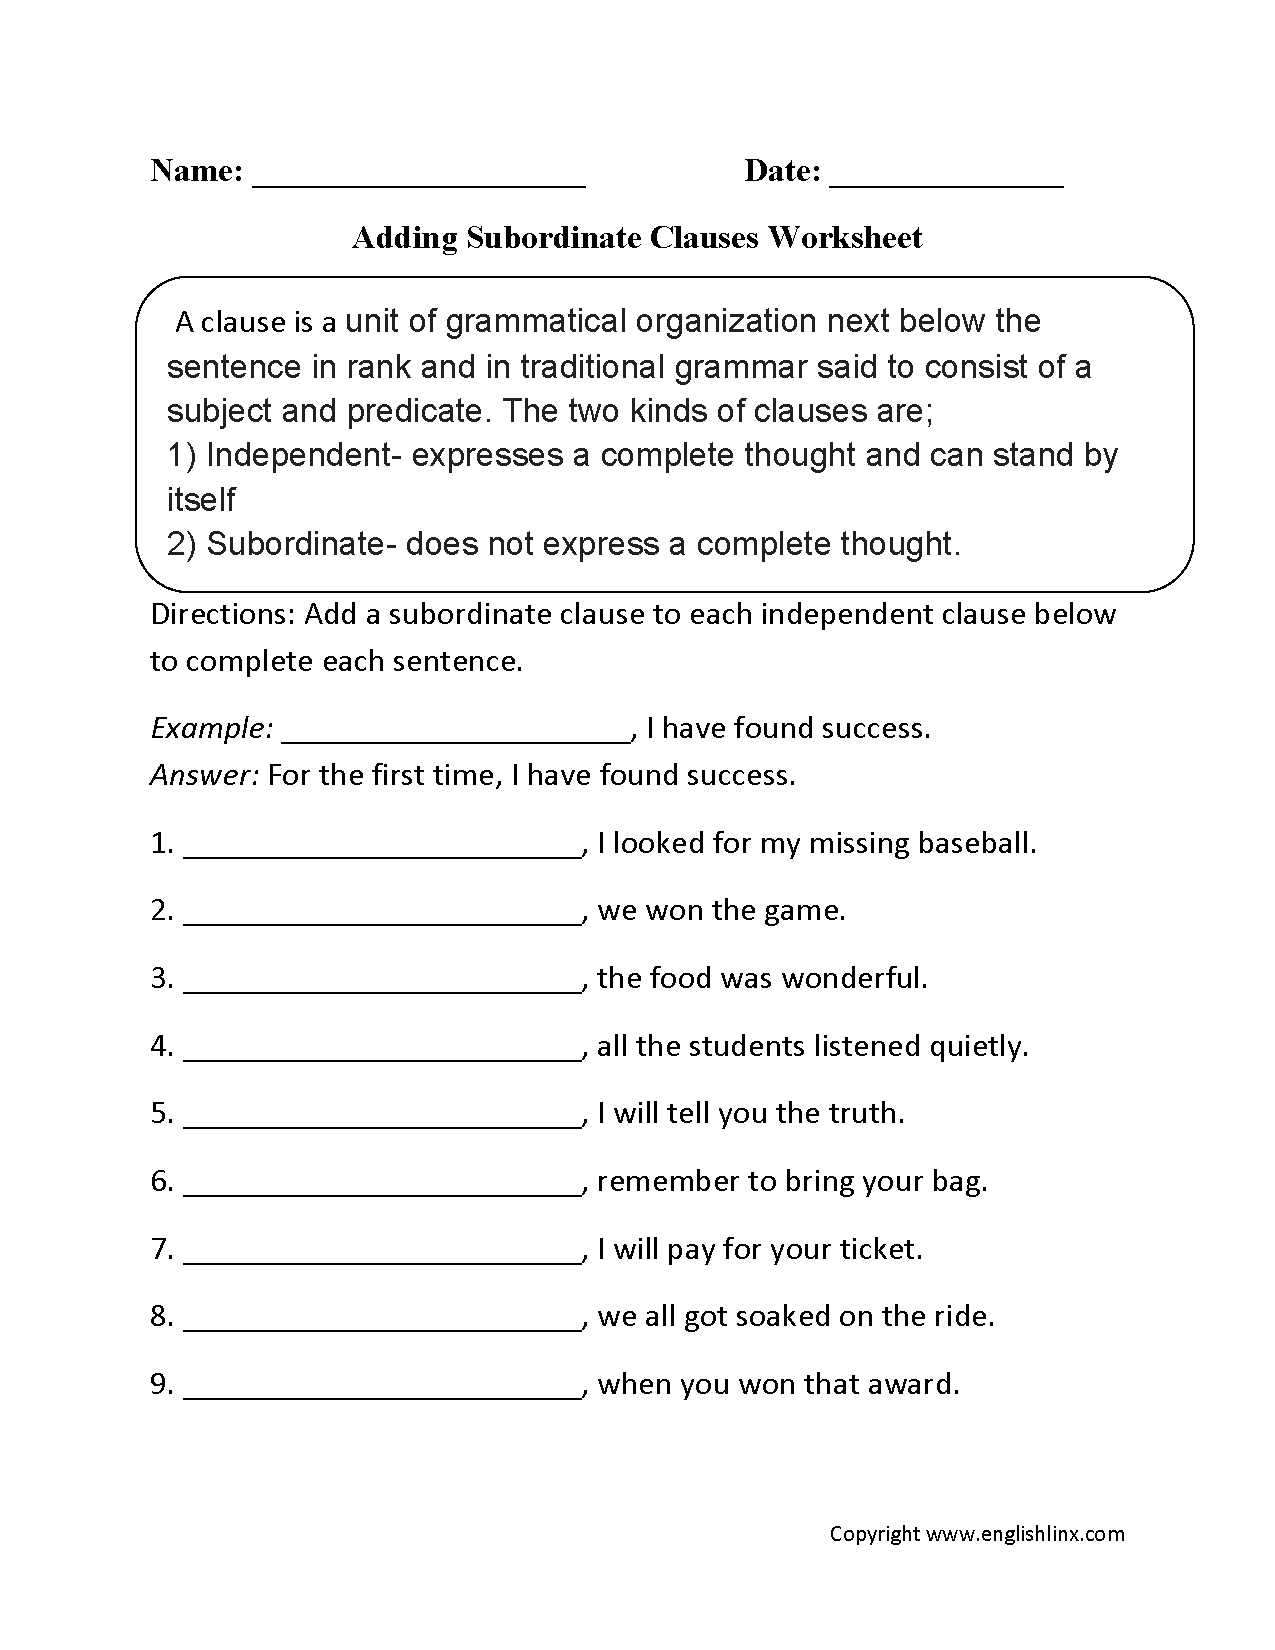 Worksheets Clauses And Phrases Worksheets adding subordinate clauses worksheet writing pinterest these clause worksheets are great for working with use the beginner intermediate or advanced level